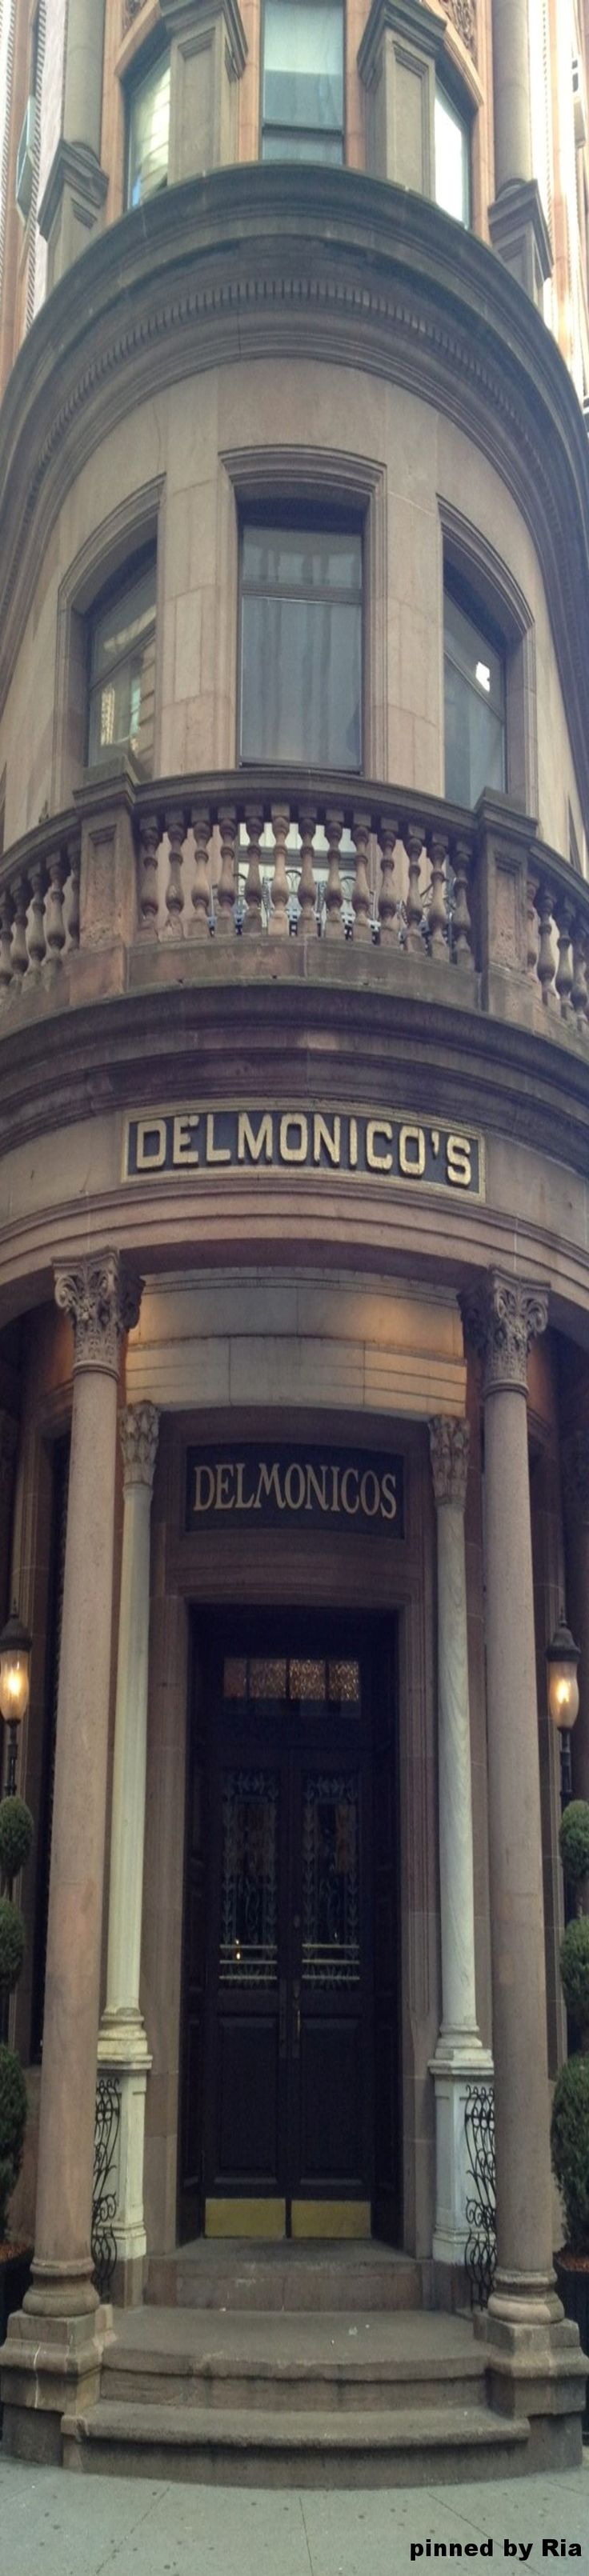 DELMONICO`S STEAKHOUSE , NEW YORK CITY, Est. 1837 l Ria